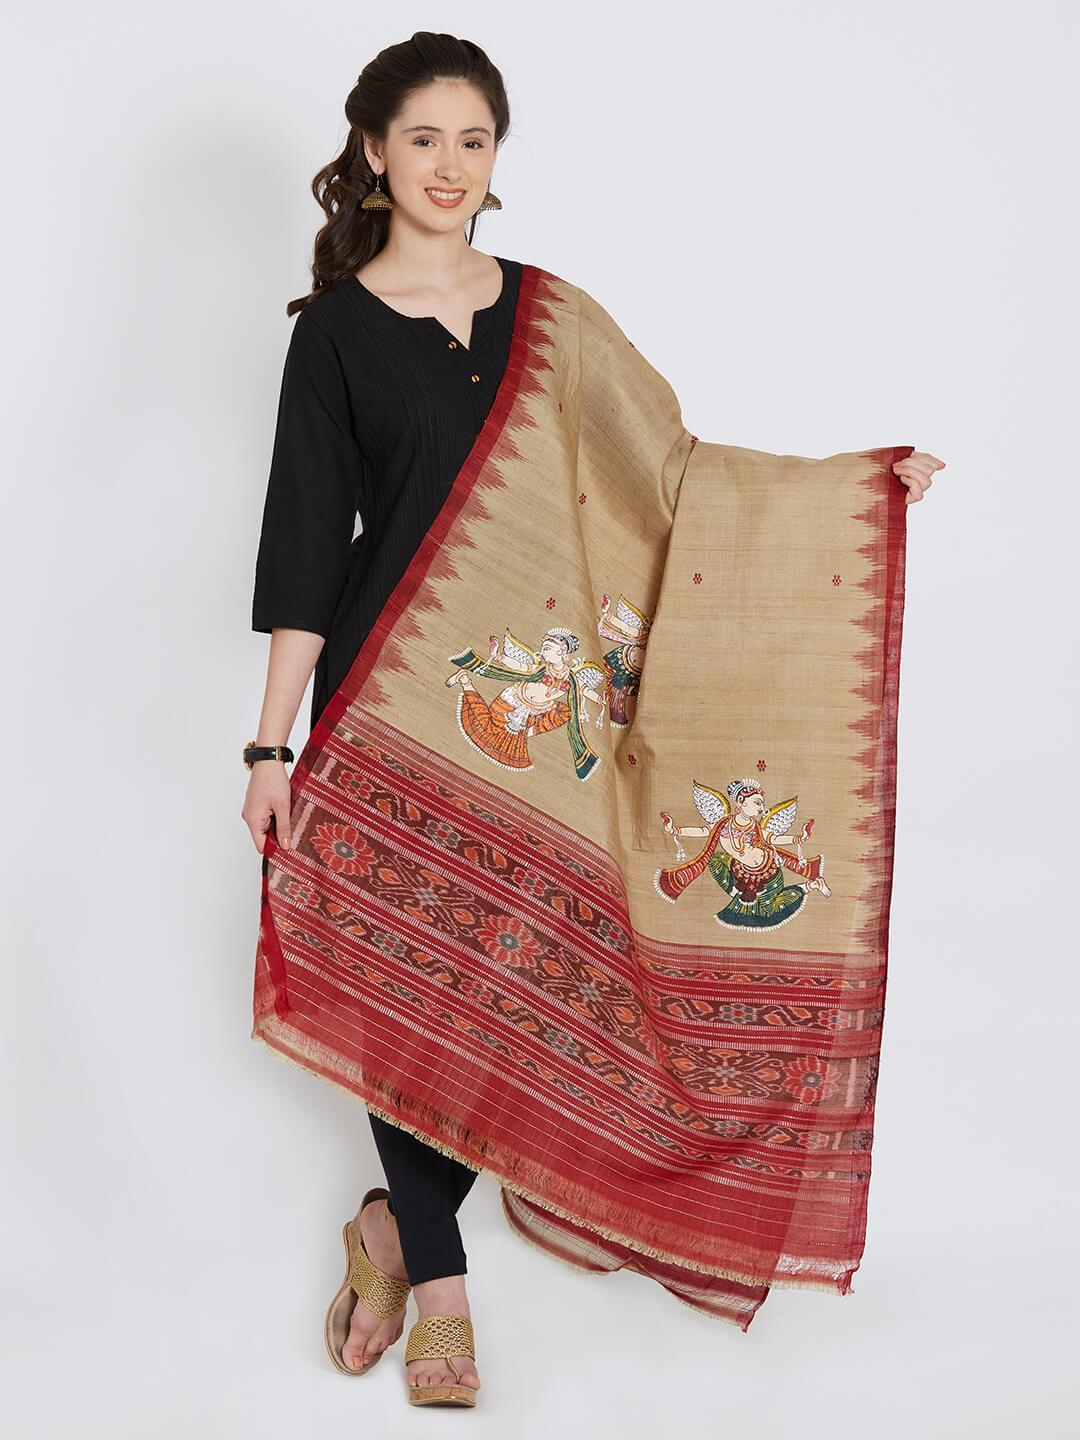 CraftsCollection.in - Beige Sambalpuri Tussar Dupatta with Pattachitra motifs